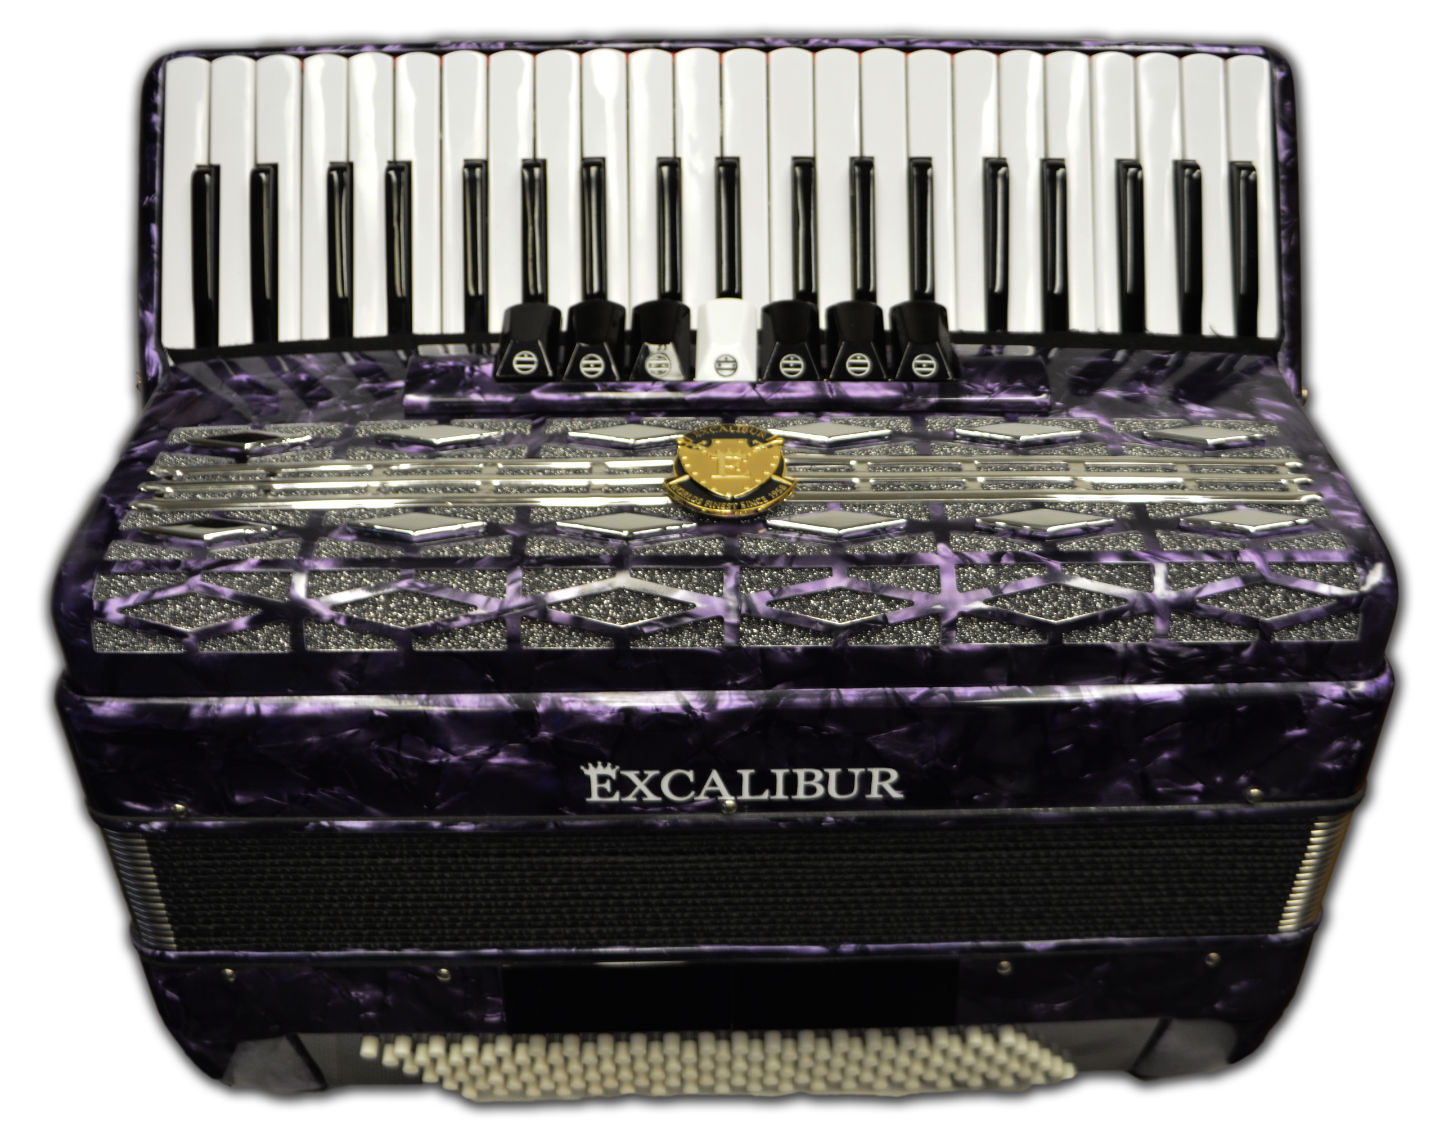 Excalibur Super Classic 120 Bass Accordion - Purple